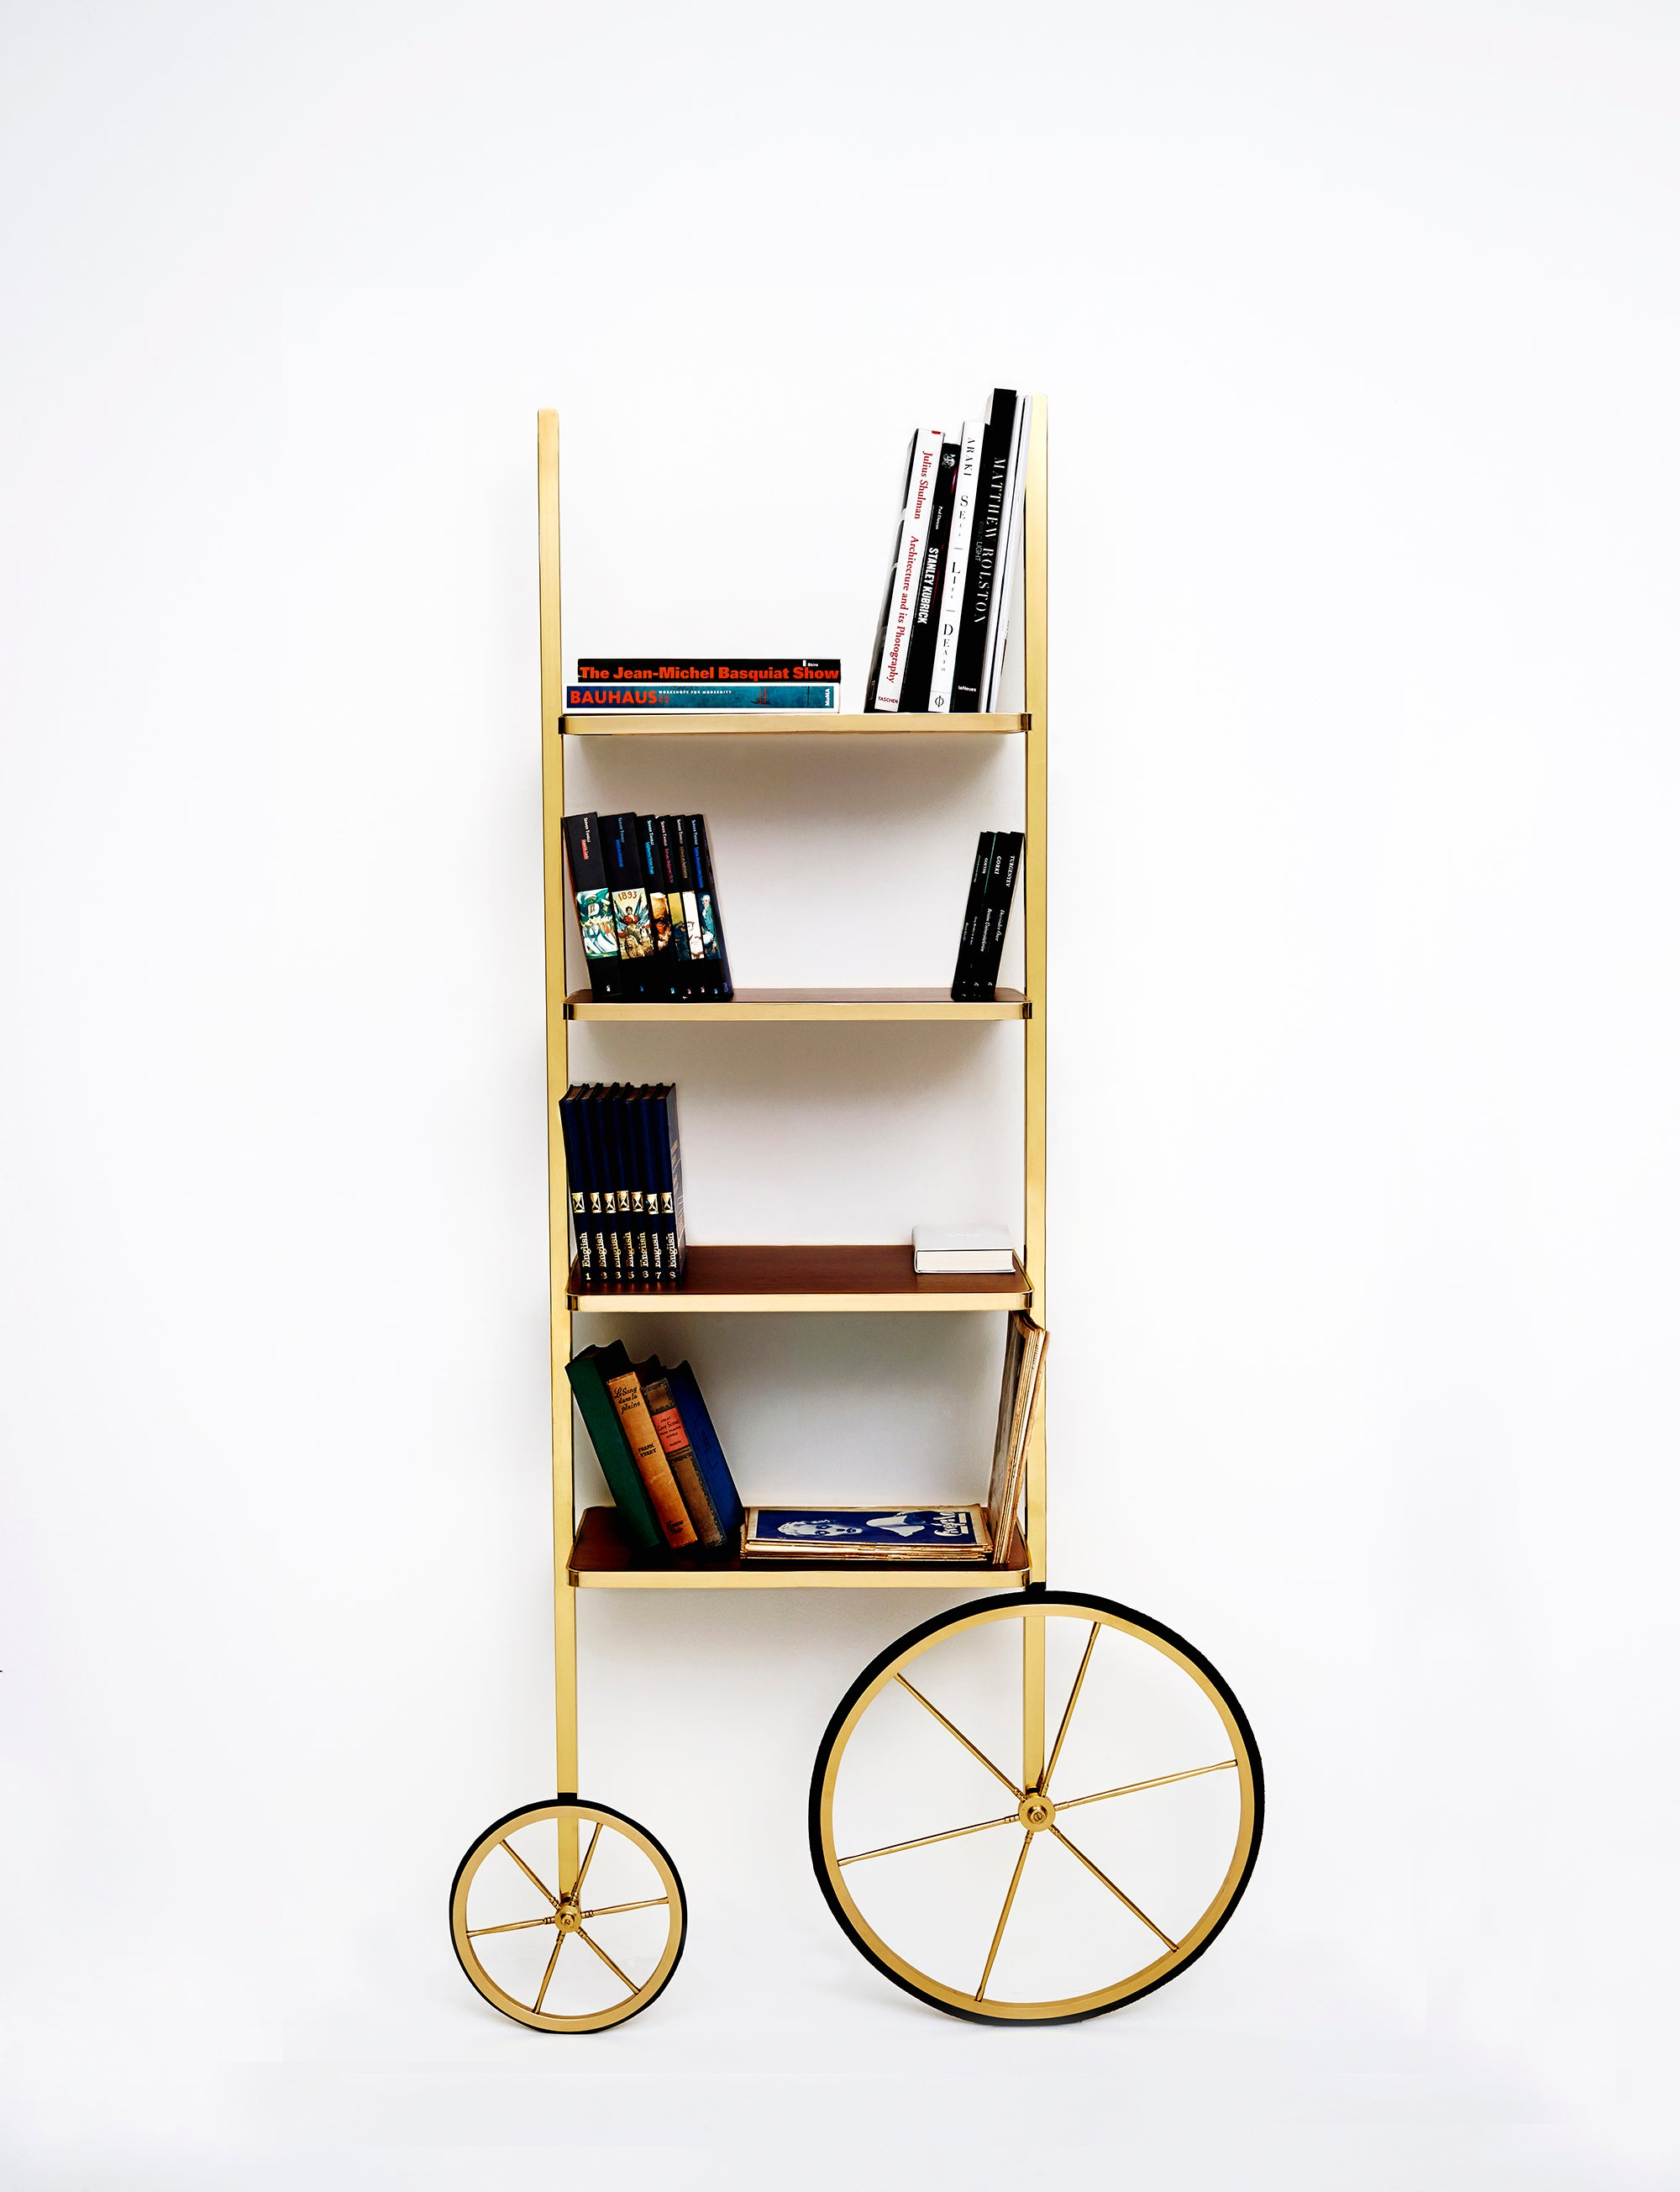 Portable Polished Brass And Mahogany Cyclopedia Bookshelf With Wheels For Sale At 1stdibs